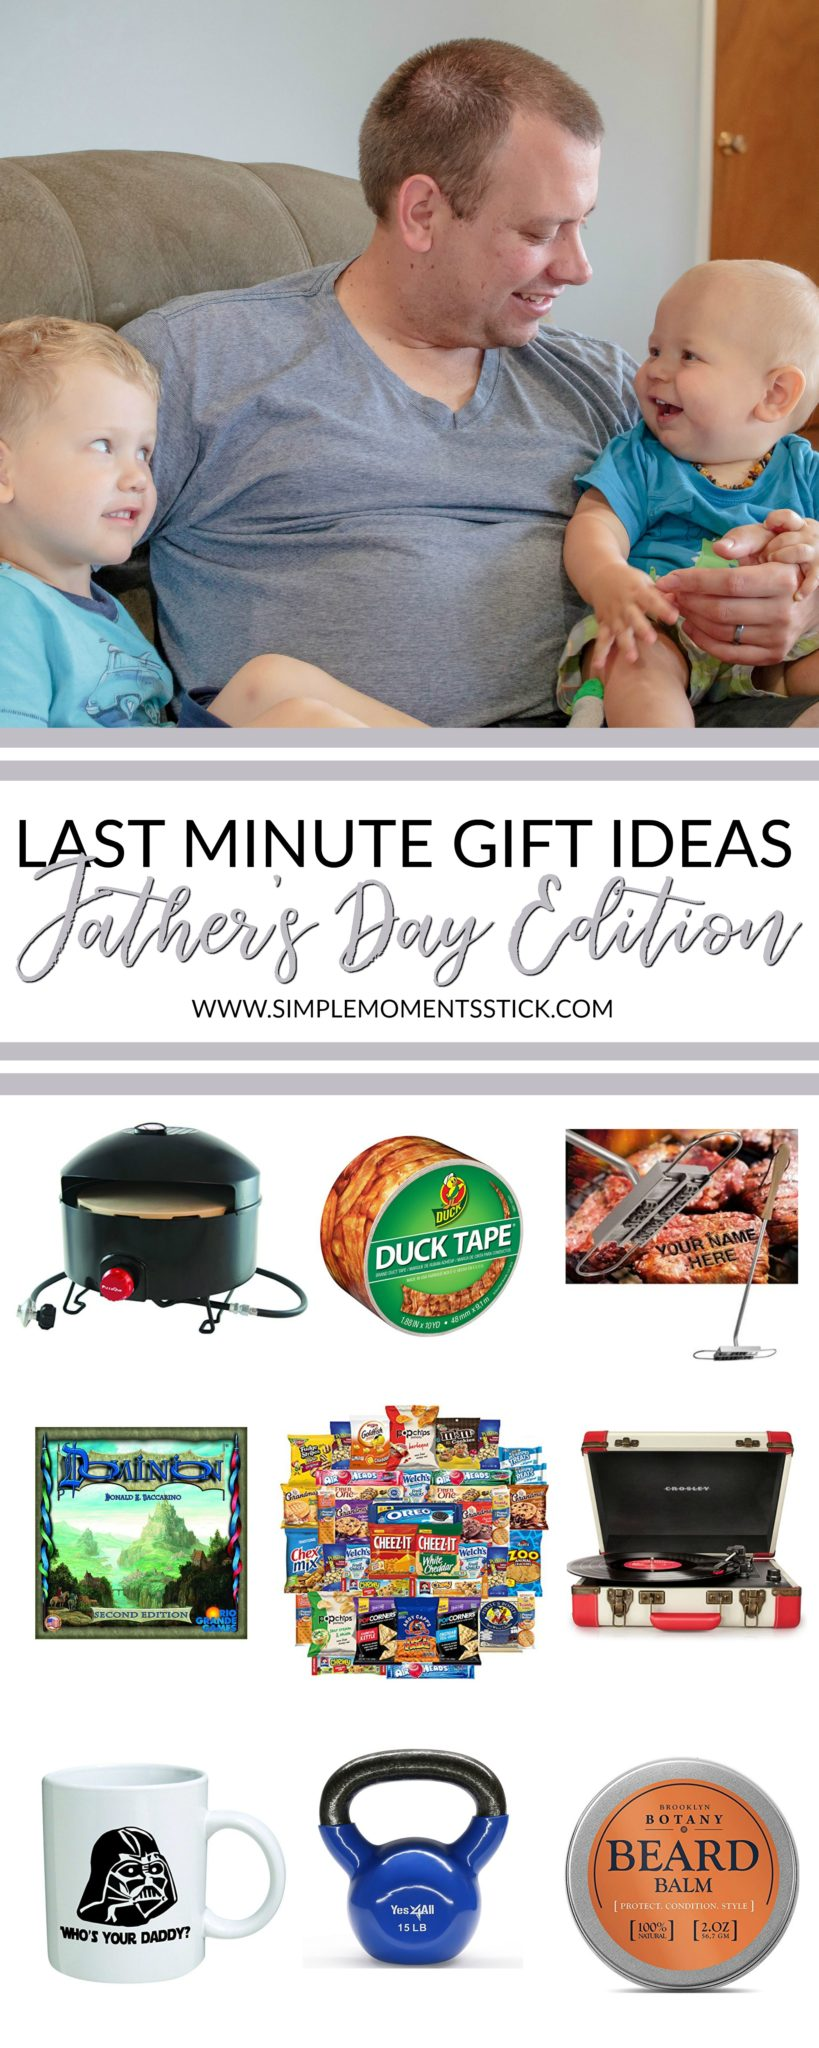 These last minute Father's Day gift ideas are perfect. There's something on there for any dad! #fathersday #giftguide #giftidea #fathersdaygiftidea #fathersday2018 #dad #daddy